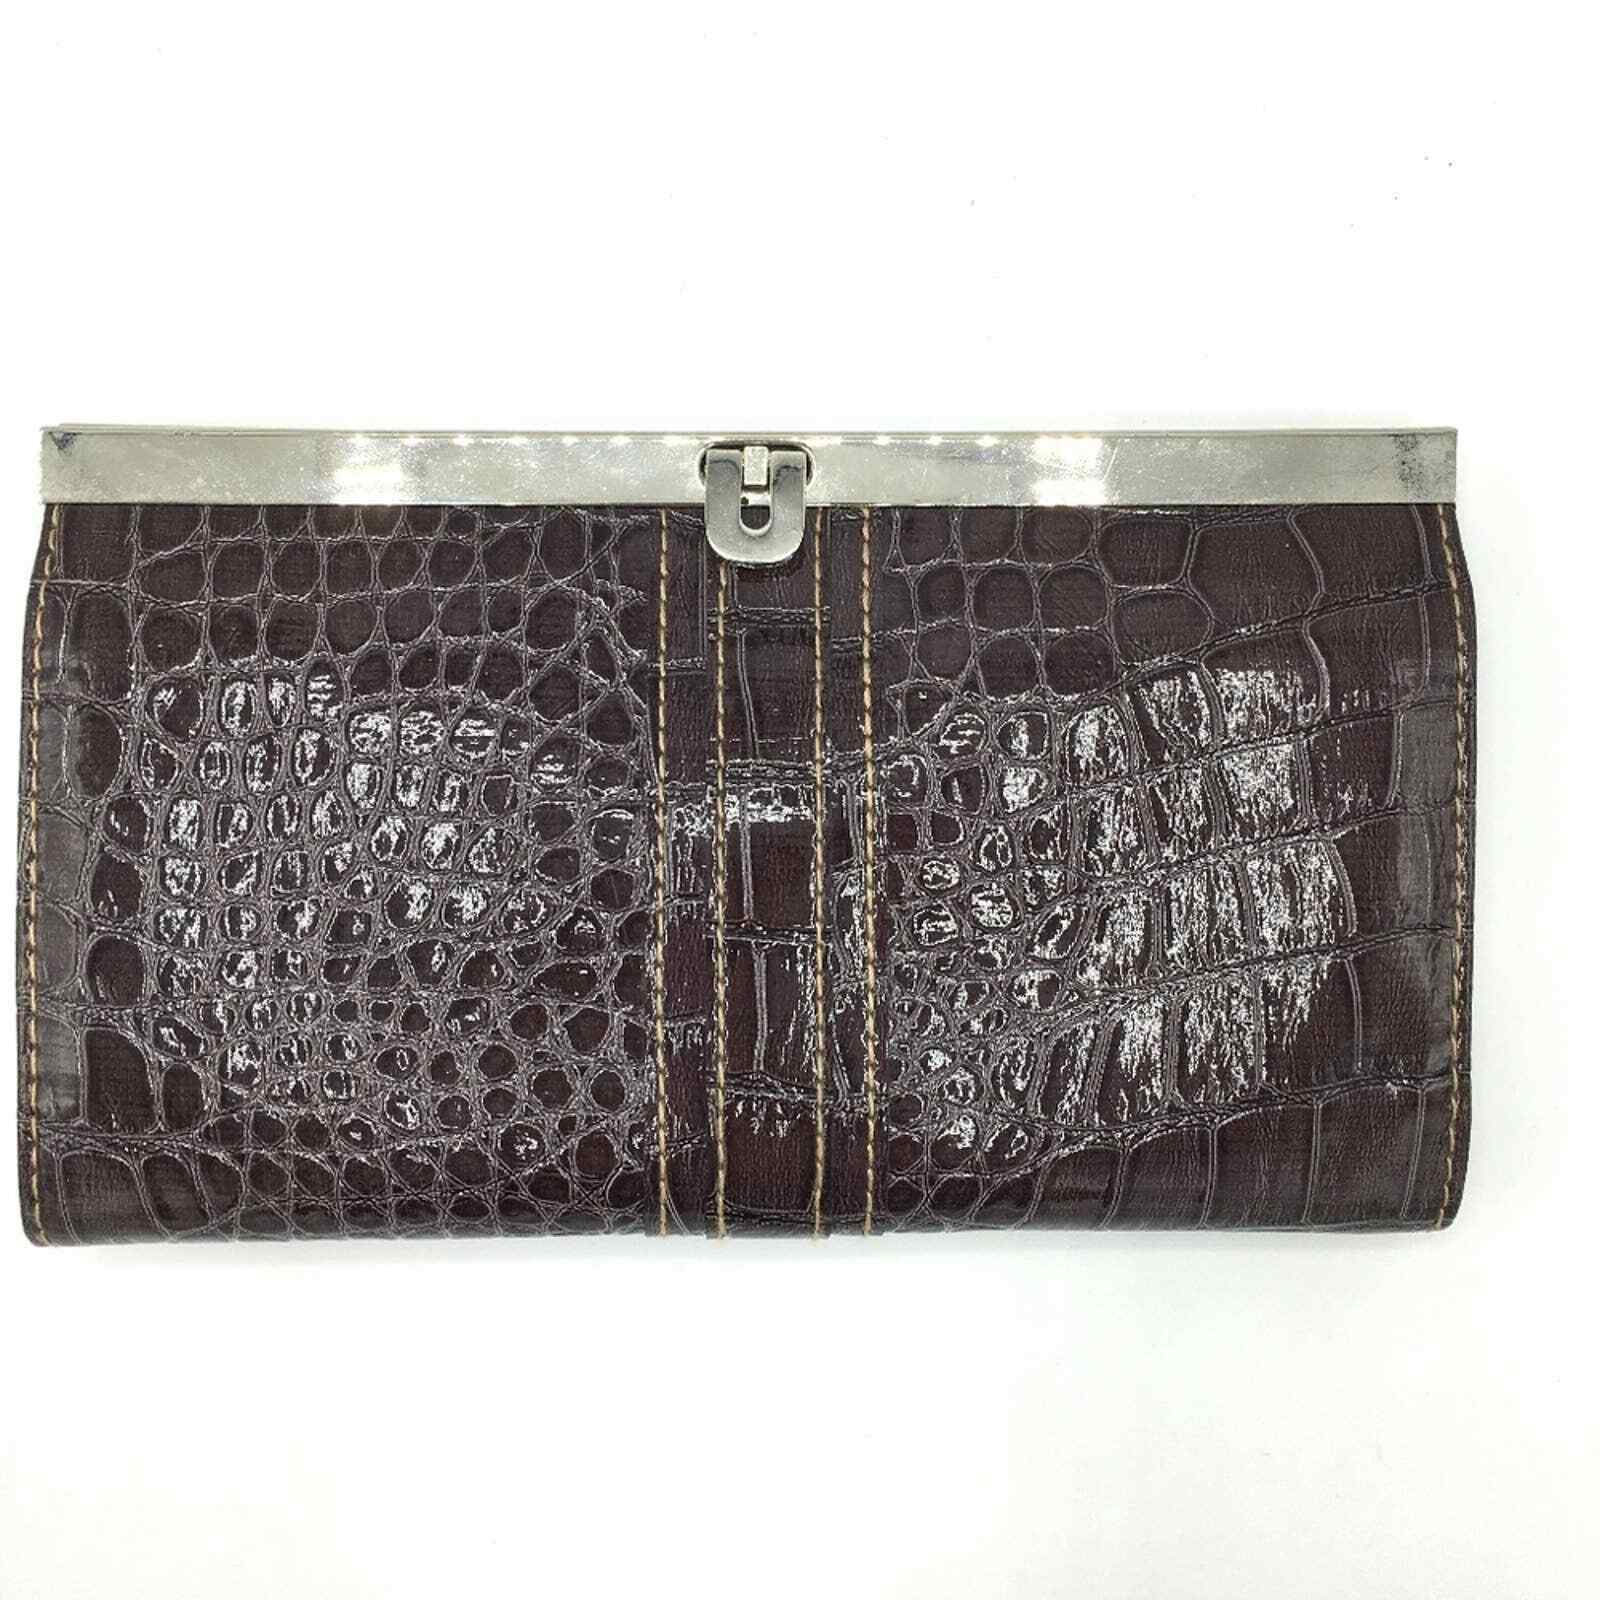 NWT ROSETTI Vegan Patent Leather Croc Embossed Brown Wallet 5 inner compartments